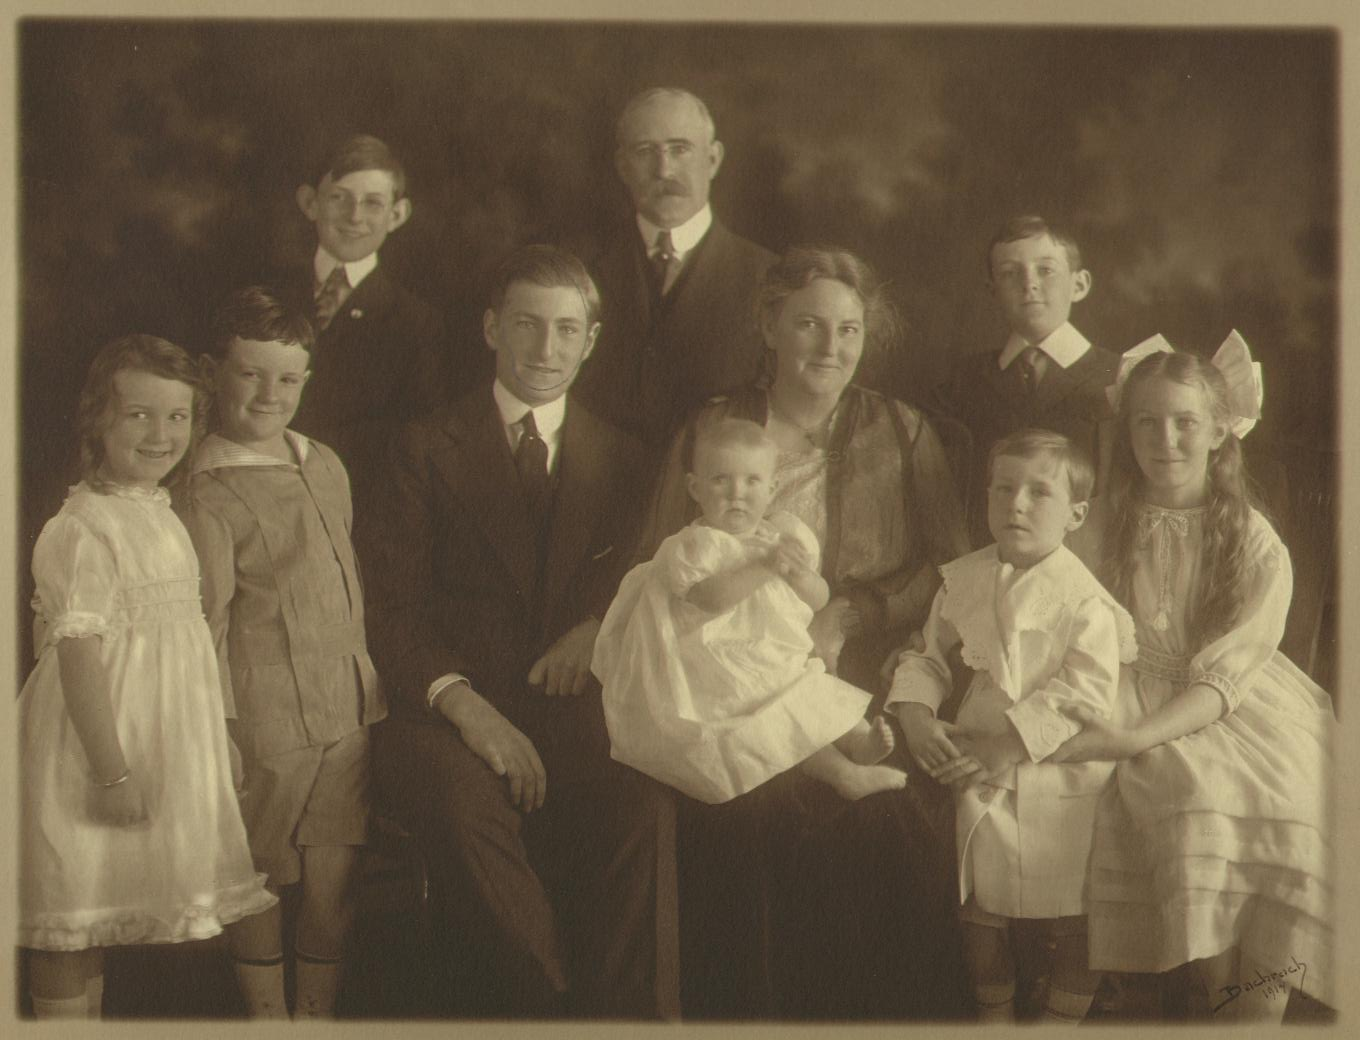 Doctor J. P. Cooney and family, 1919